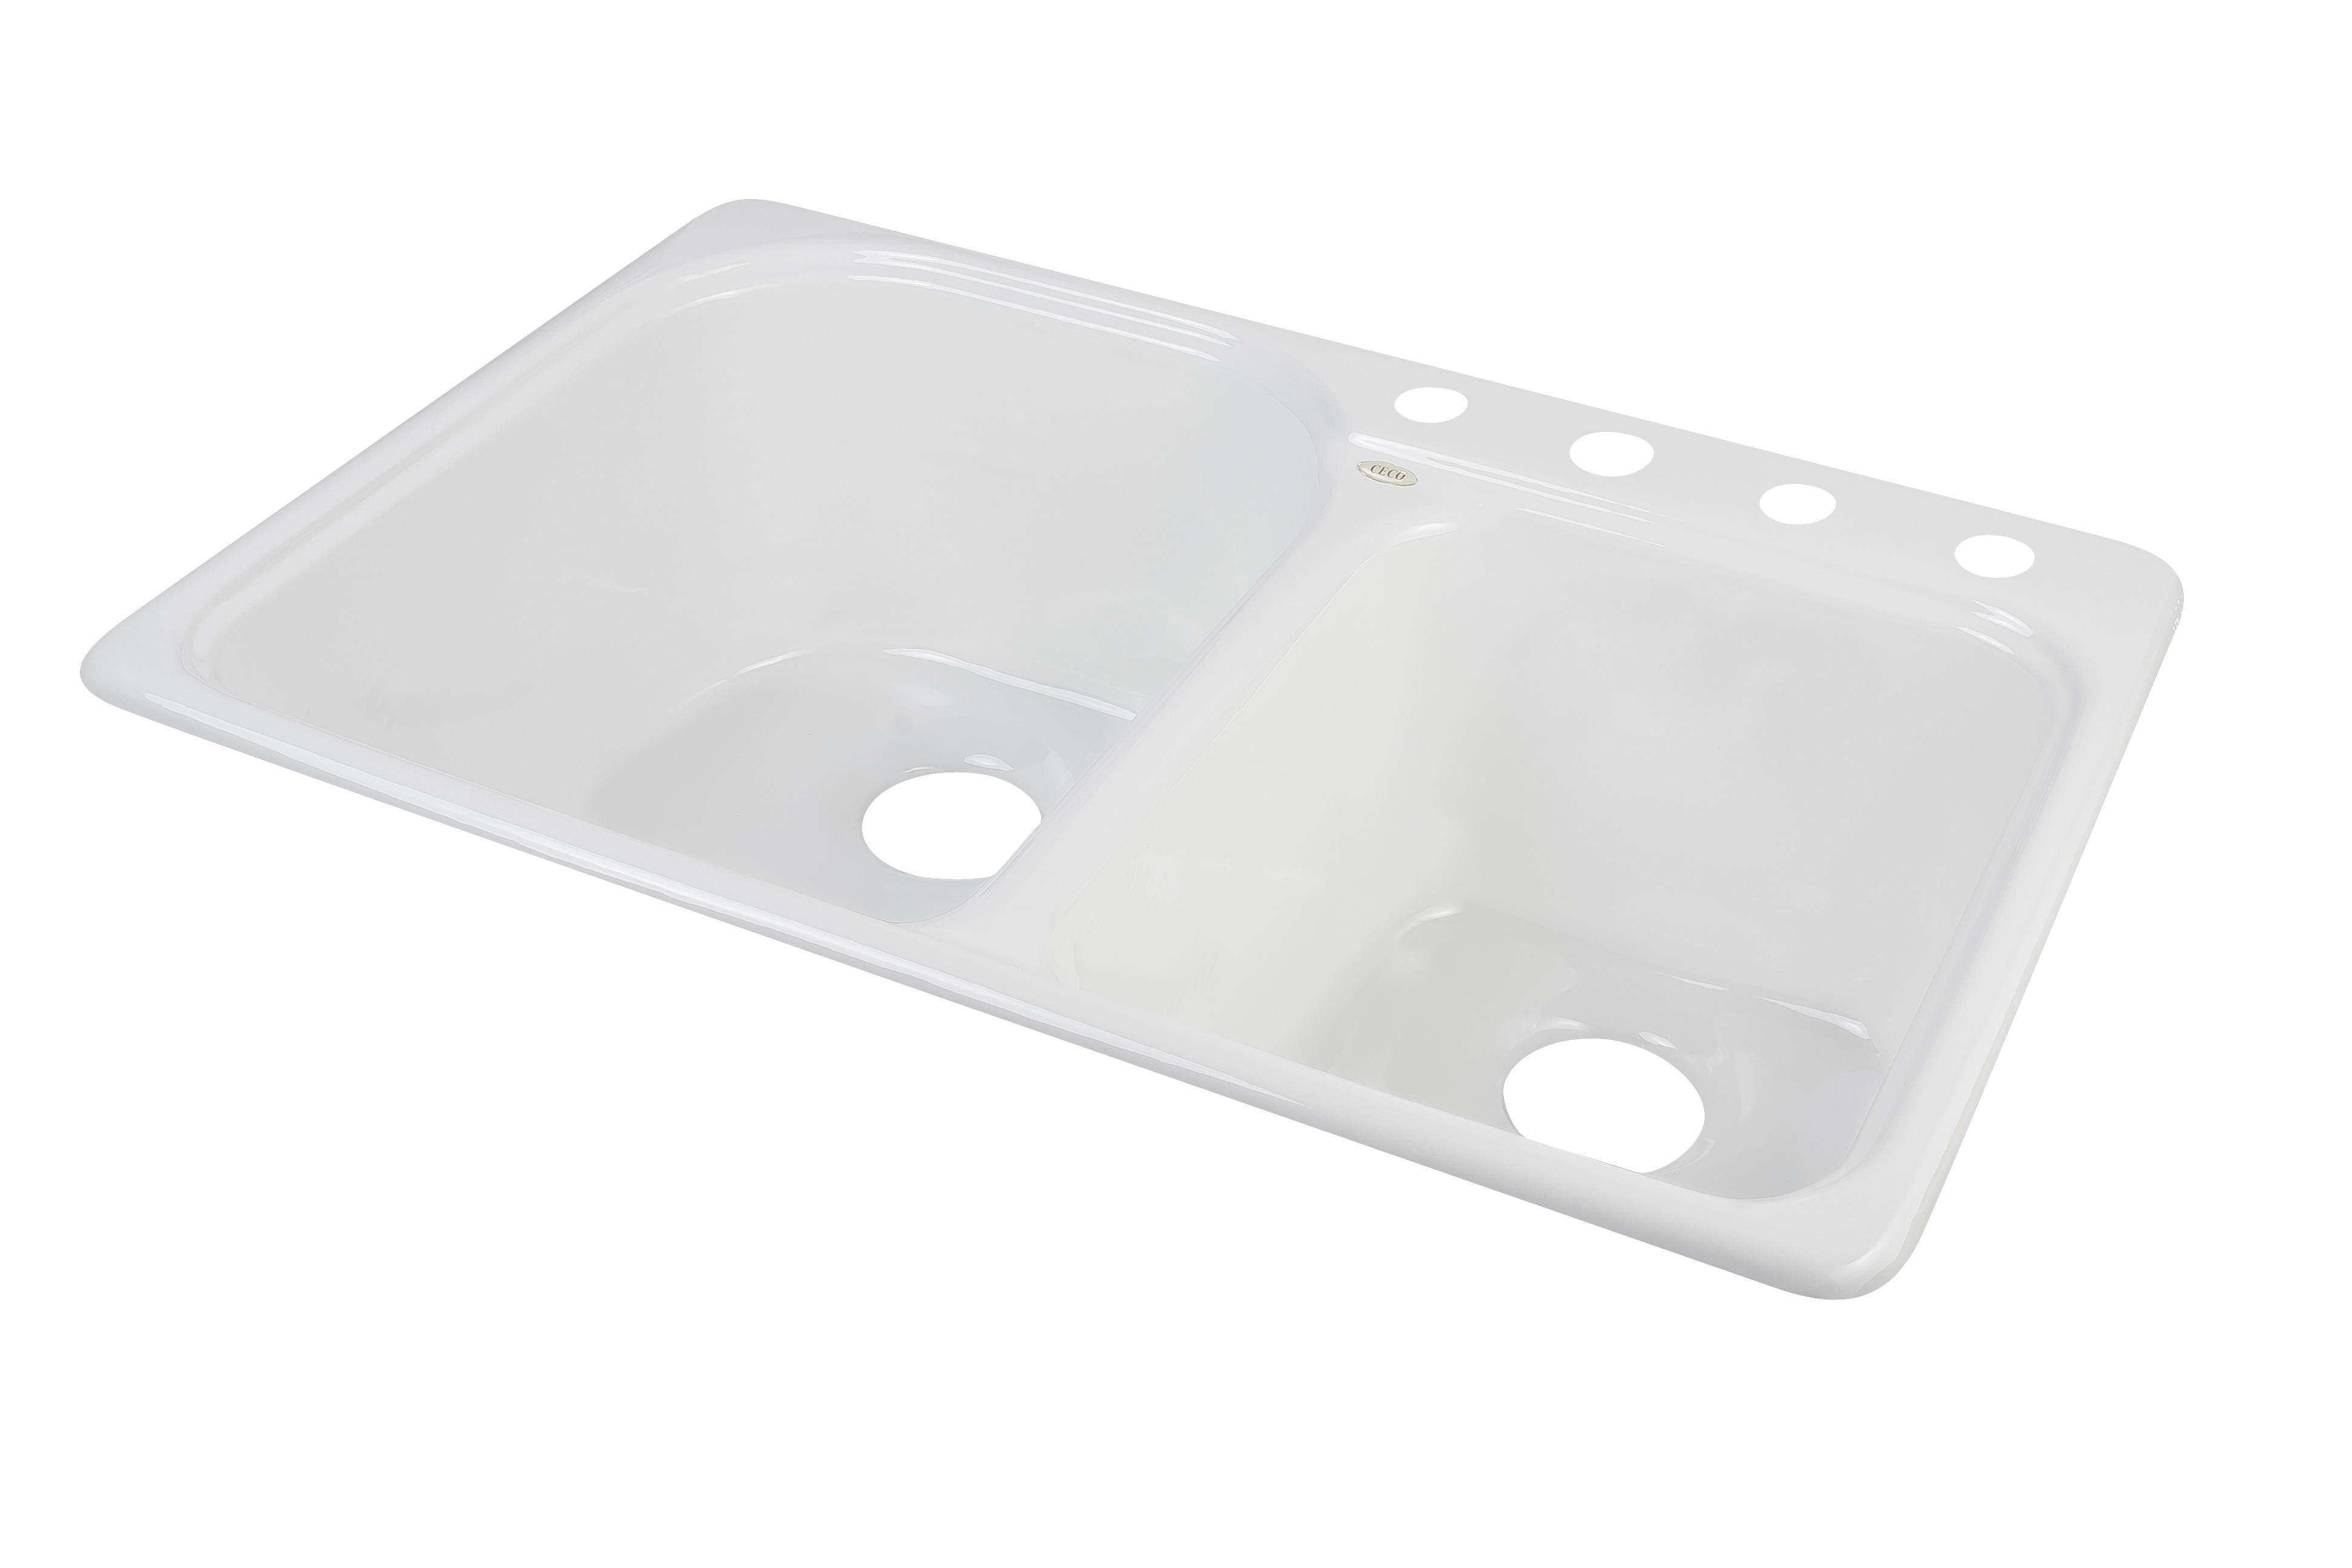 CECO 767-4 Extra Deep 33'' x 22'' Self-Rimming Heavy Cast Iron Kitchen Sink